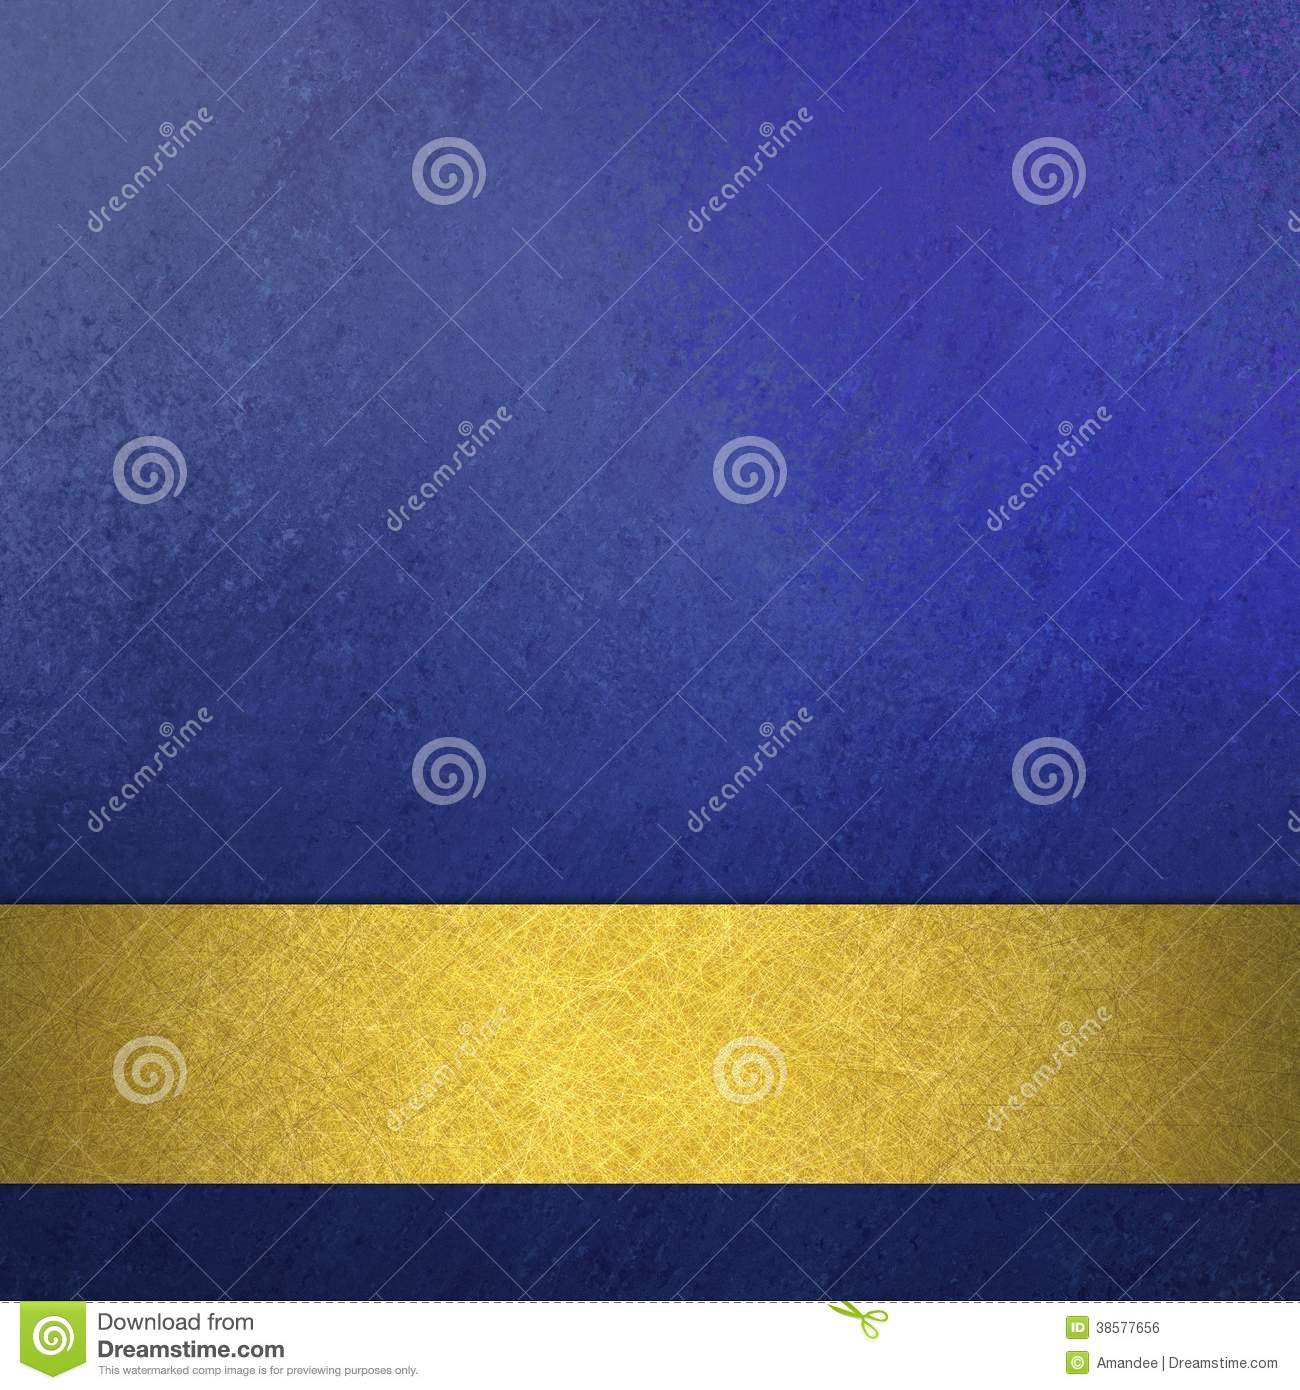 Abstract blue background luxury rich vintage grunge background texture design with elegant antique abstract gold ribbon stripe